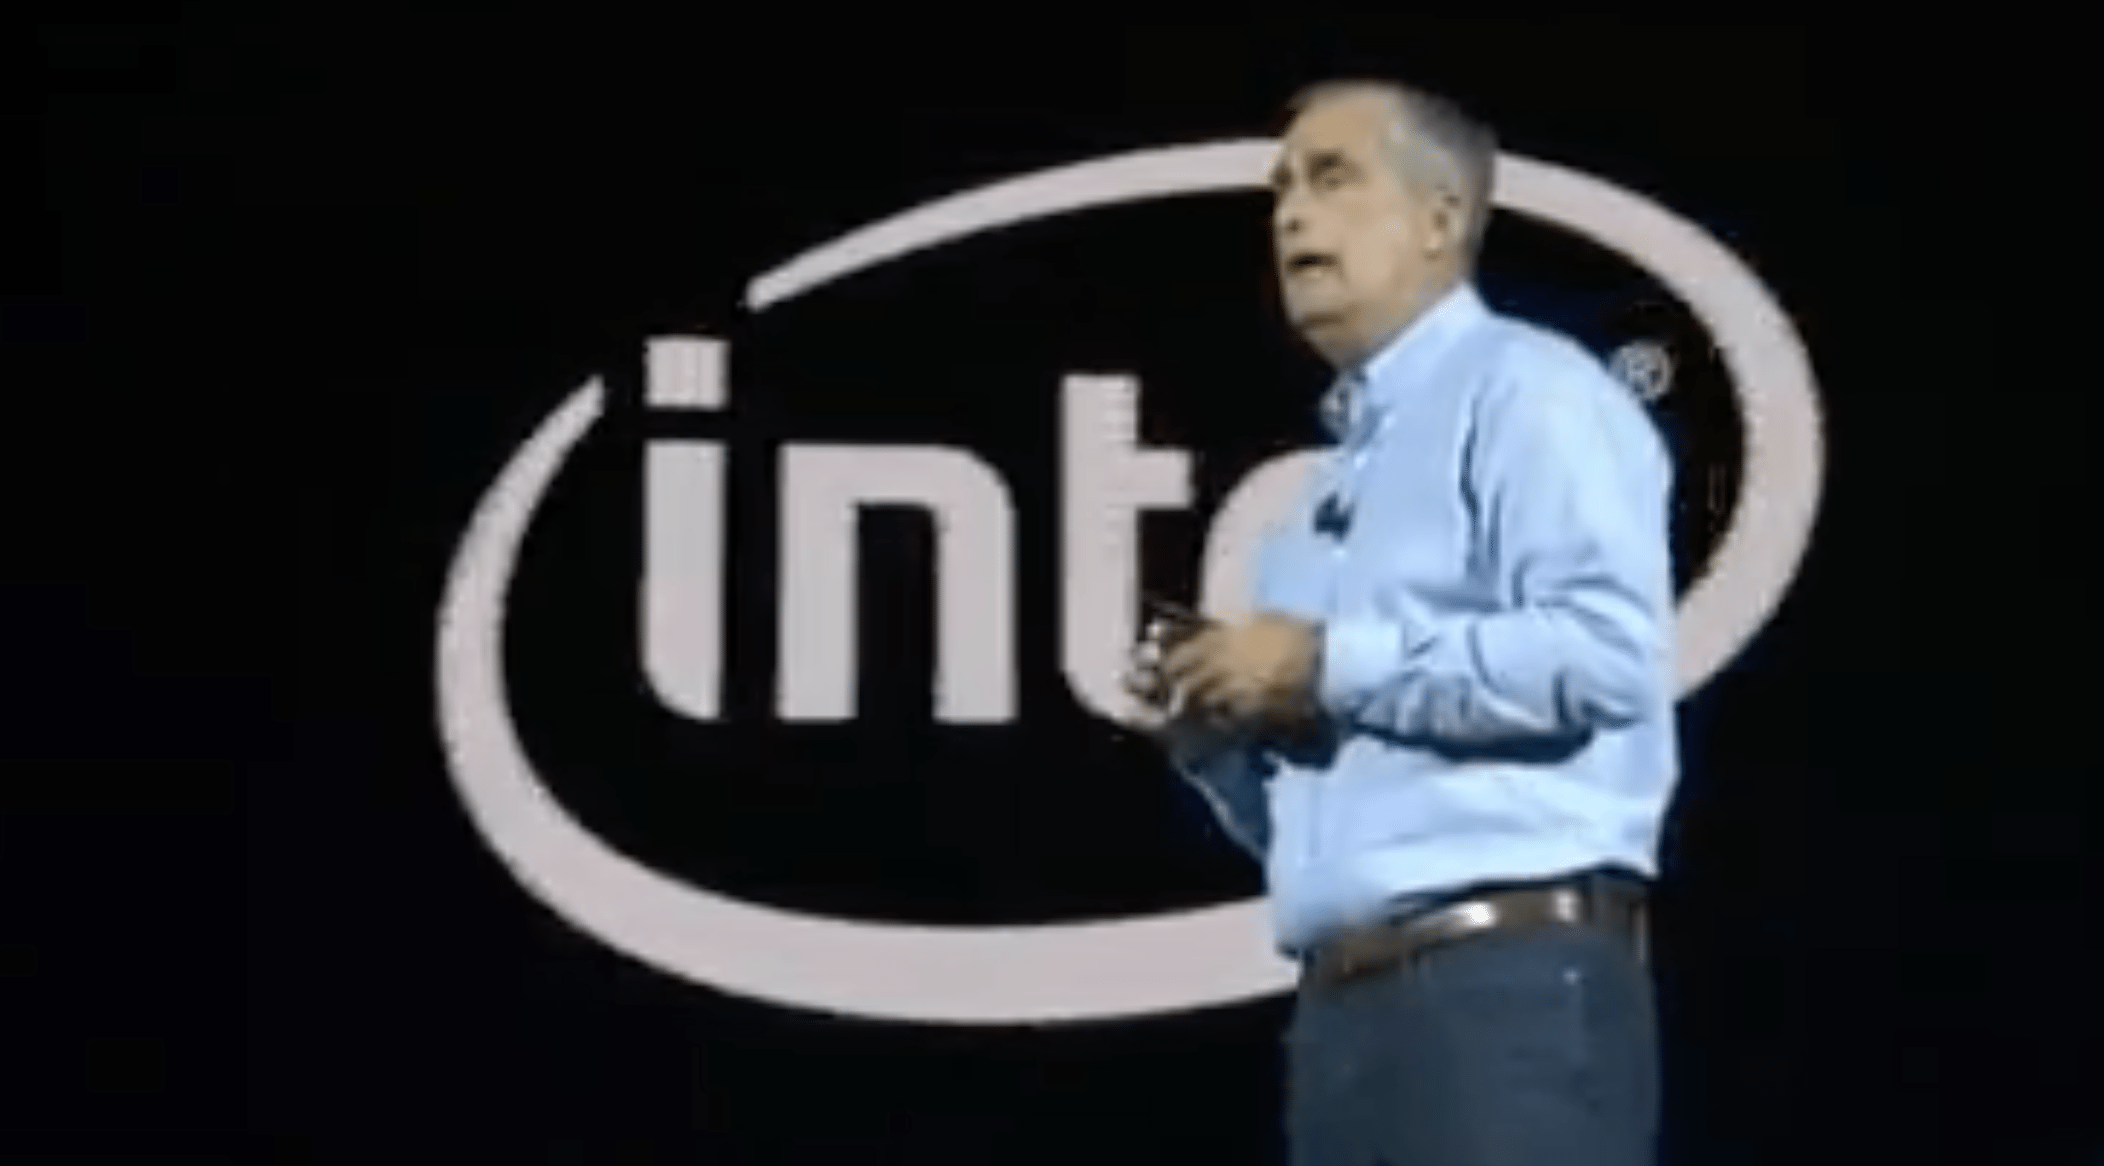 Intel CEO Krzanich addresses Meltdown and Spectre at CES